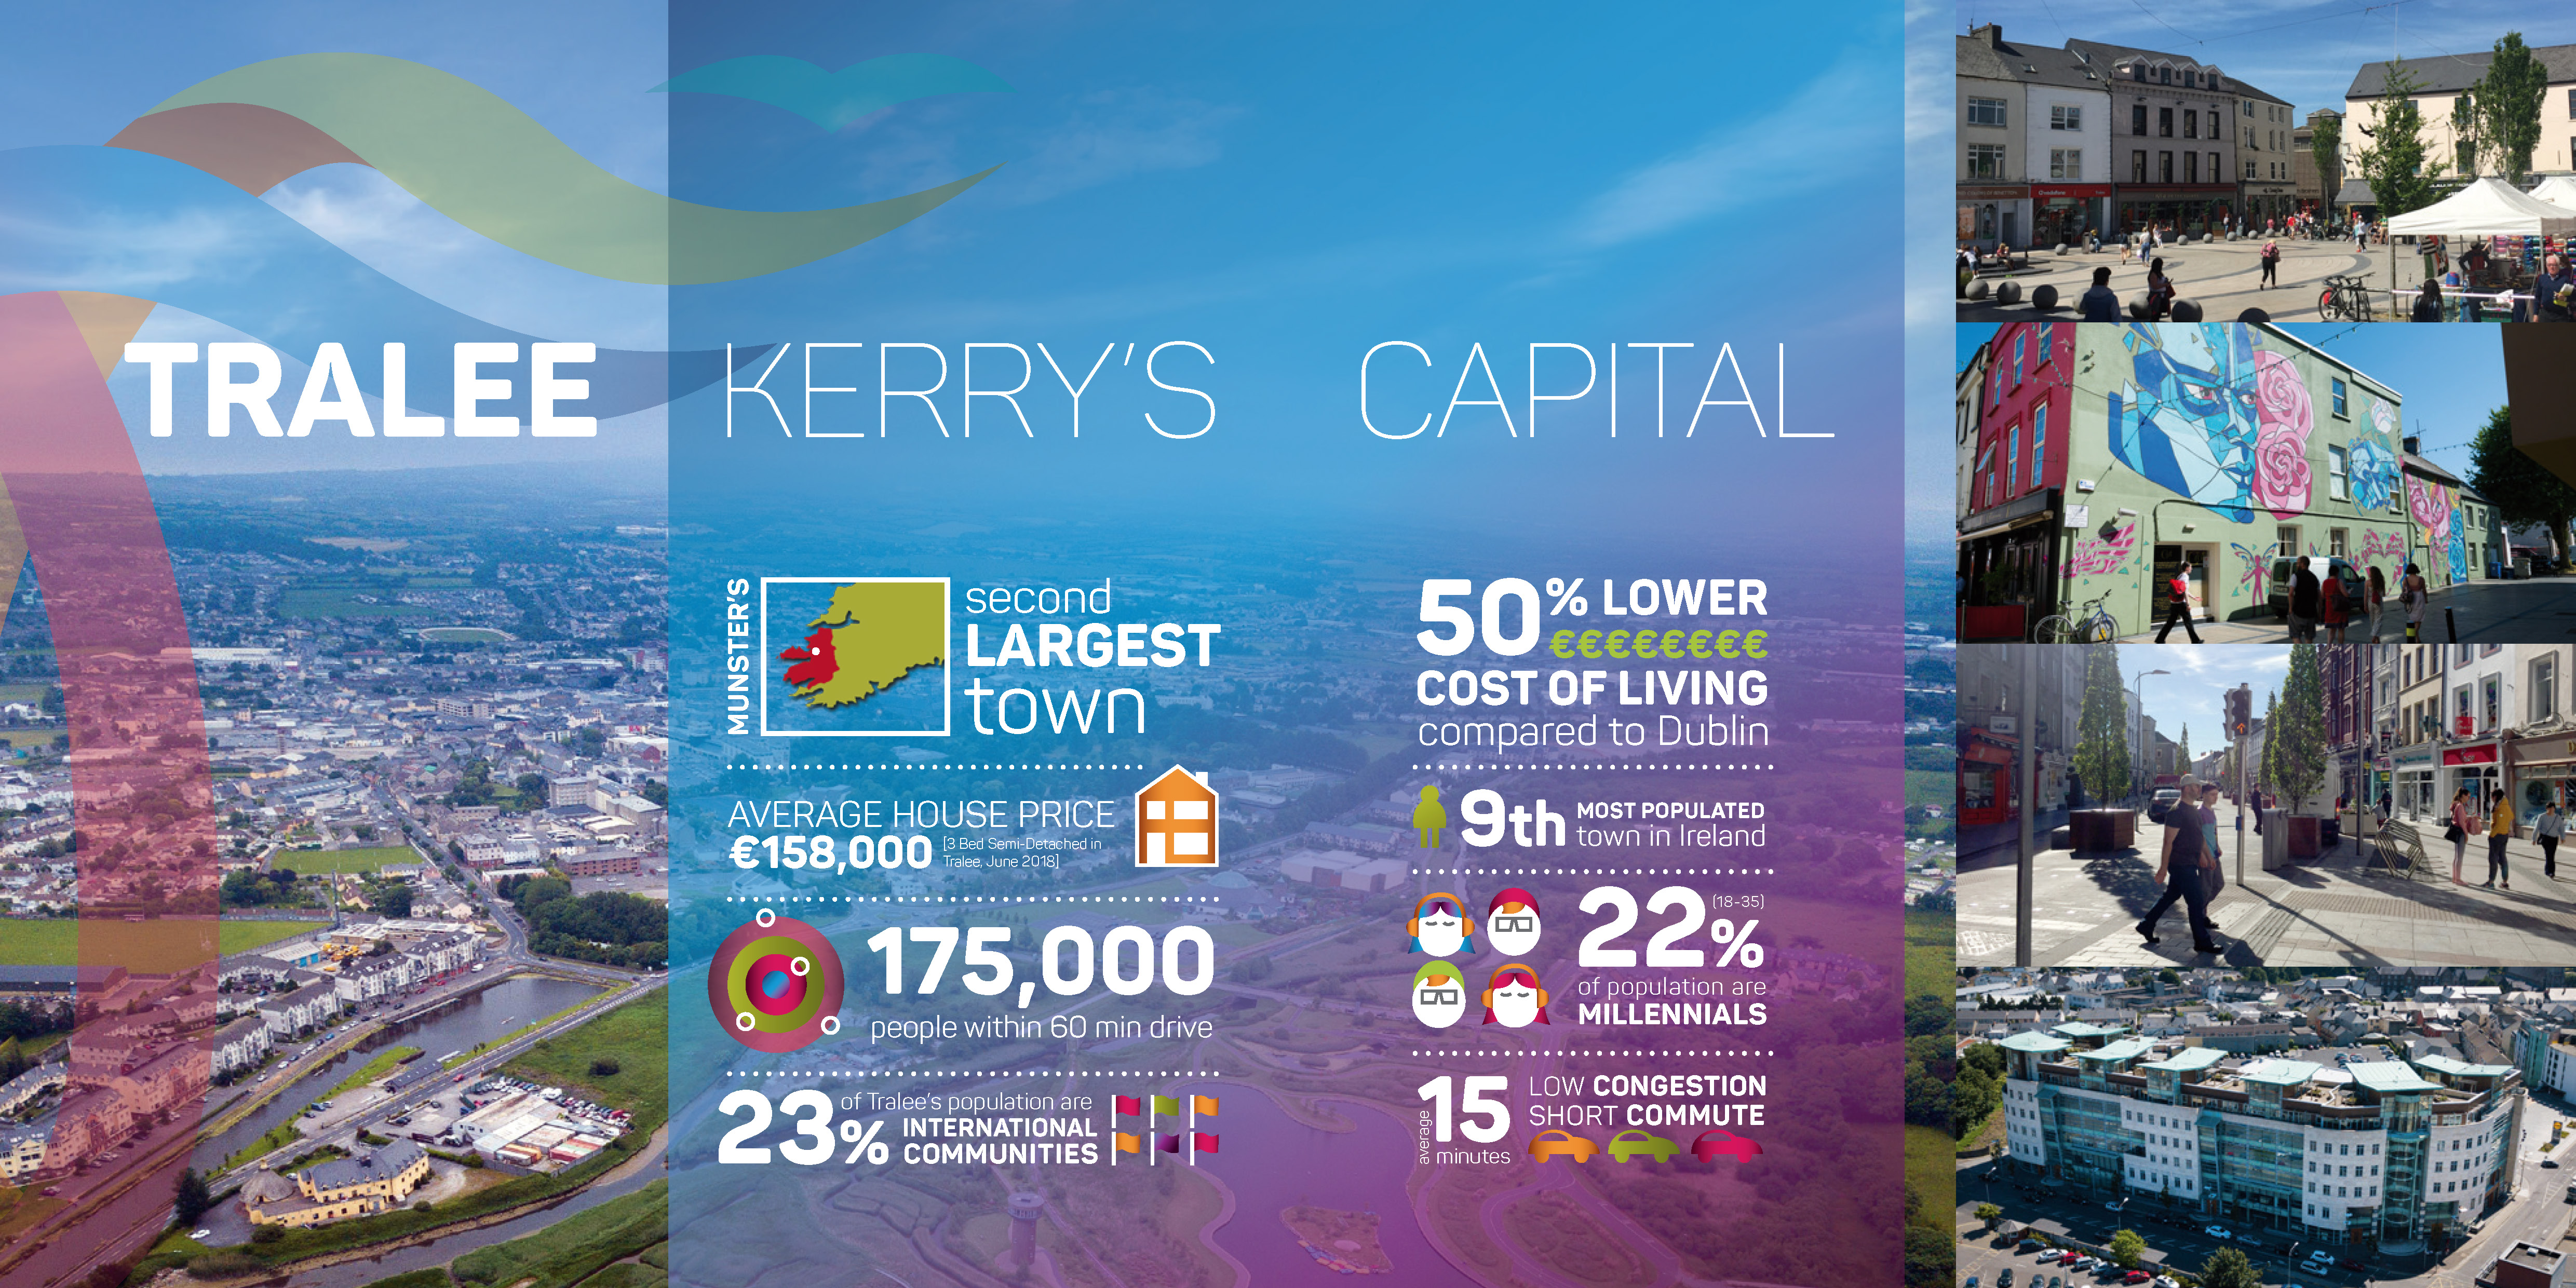 invest-tralee-brochure_page_02